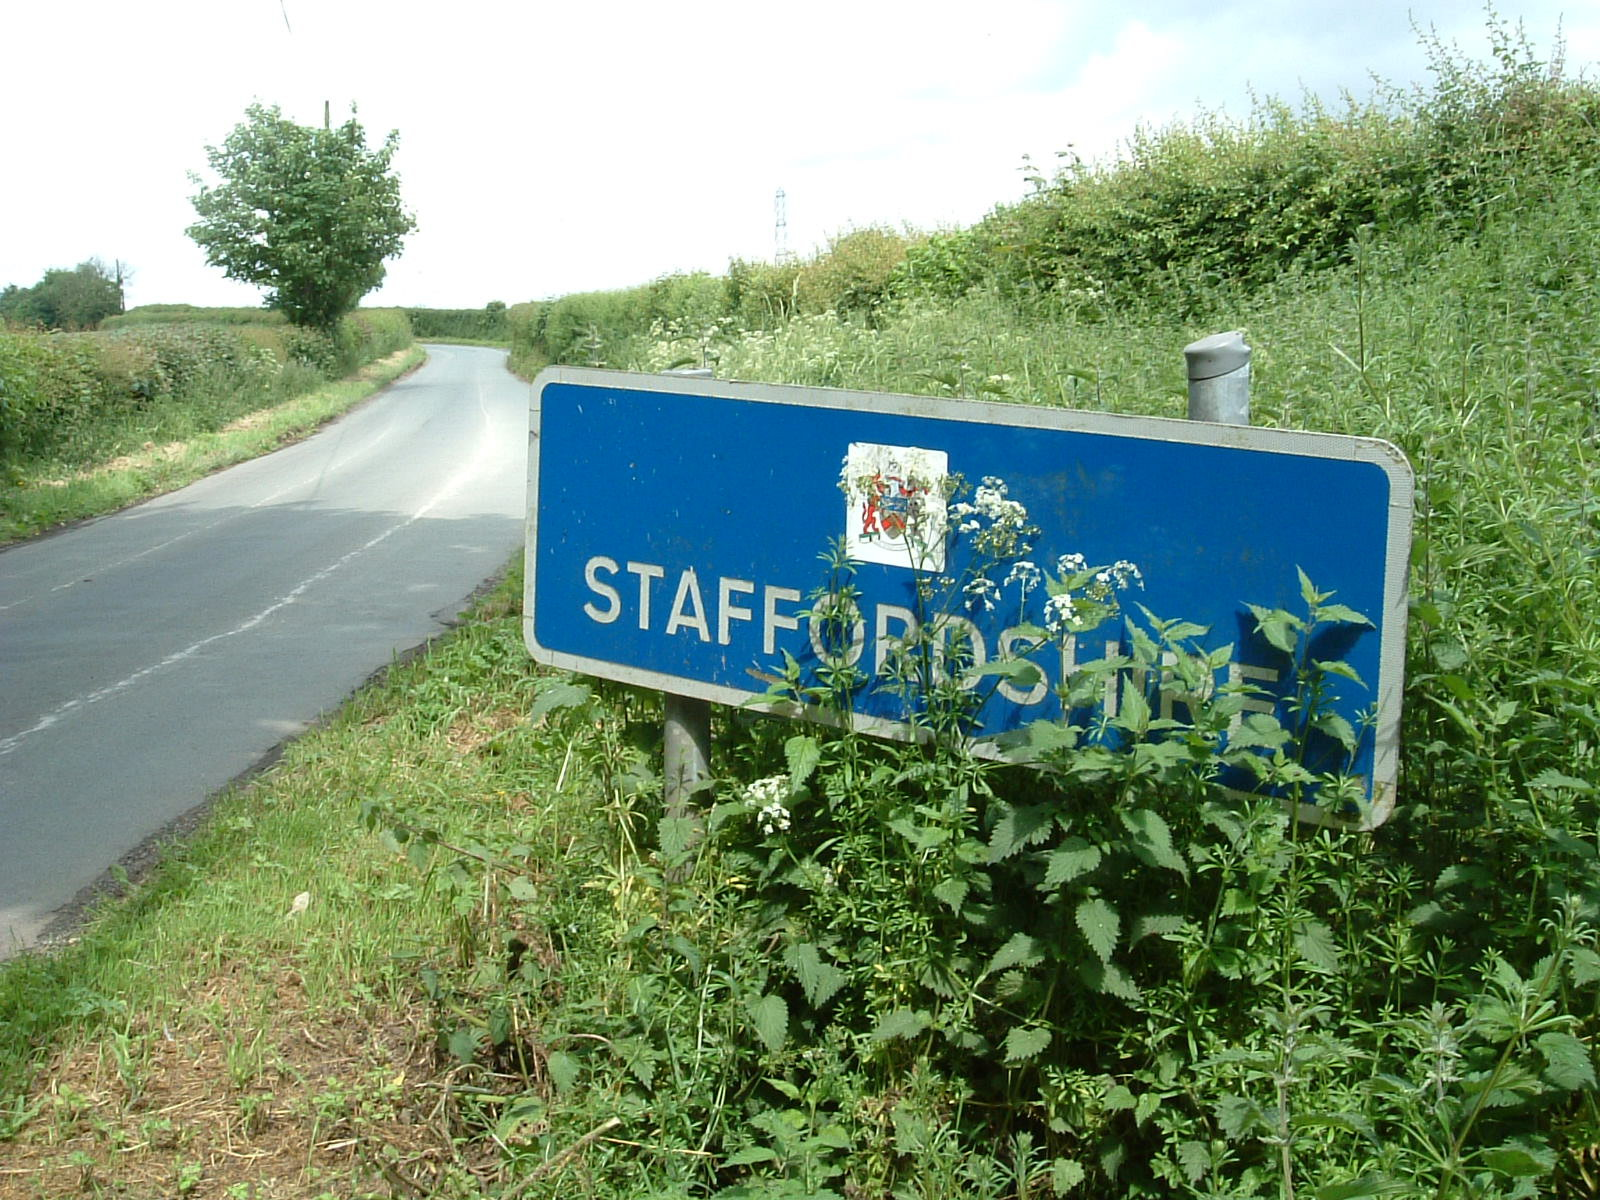 The Staffordshire border